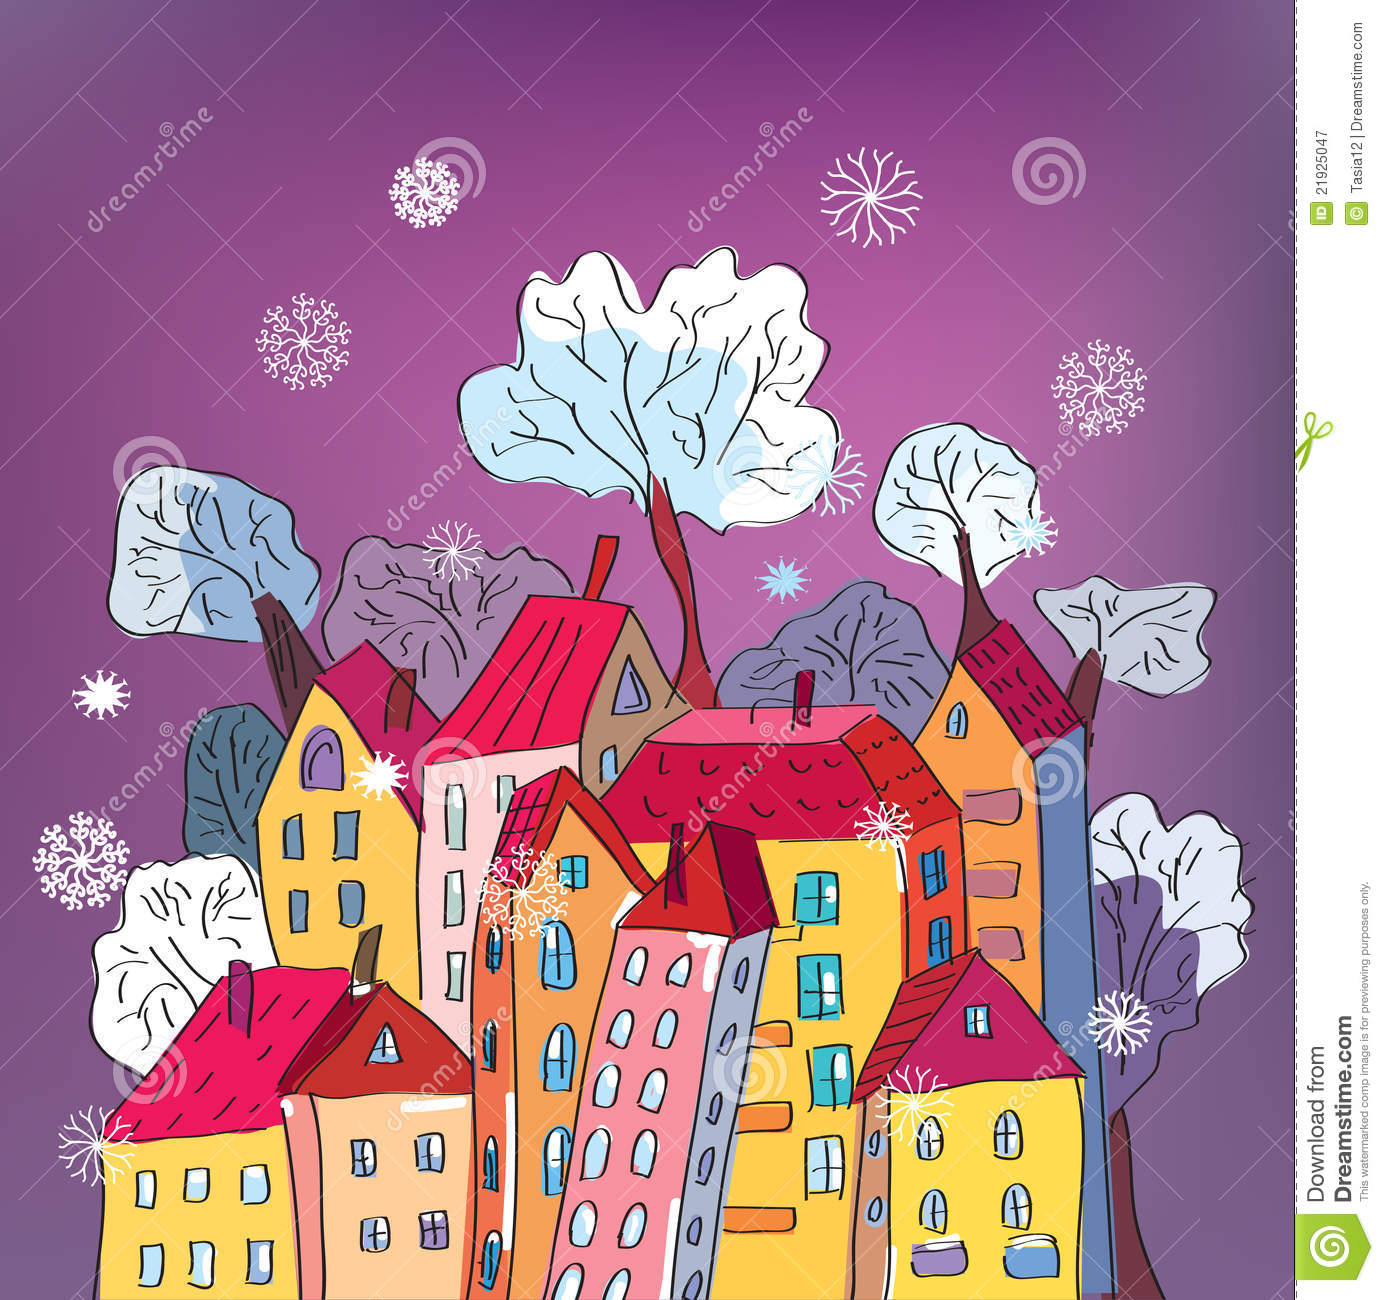 Home sweet home moving in new house greeting card stock vector christmas card with whimsical houses royalty free stock photography kristyandbryce Gallery